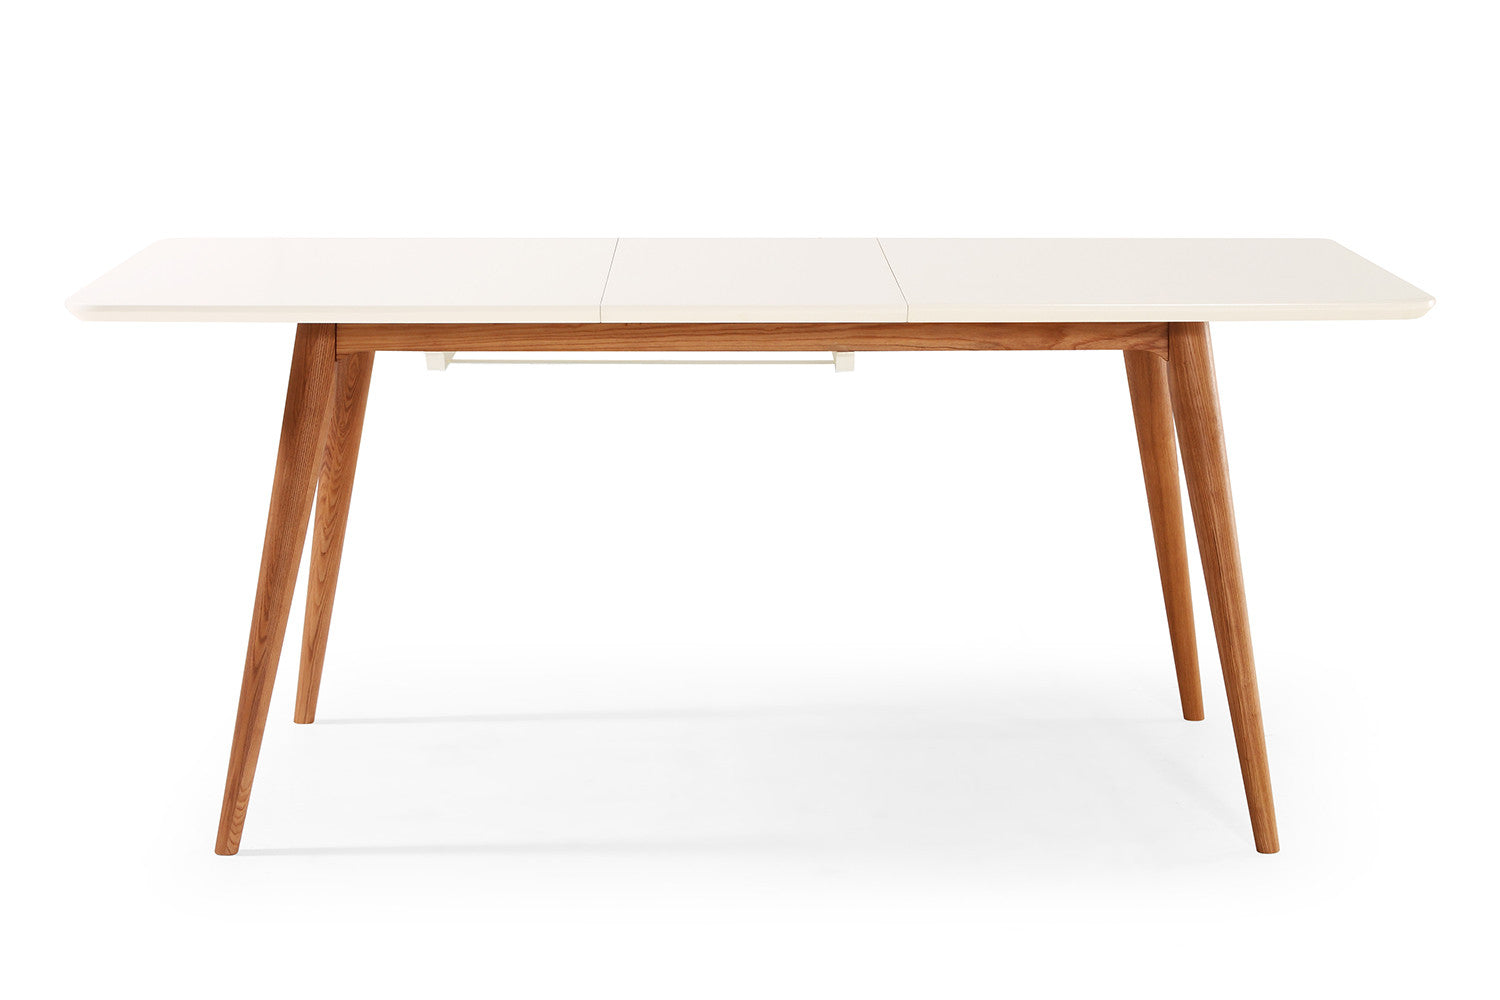 Table de salle manger extensible scandinave wyna dewarens for Table de salle a manger design en bois